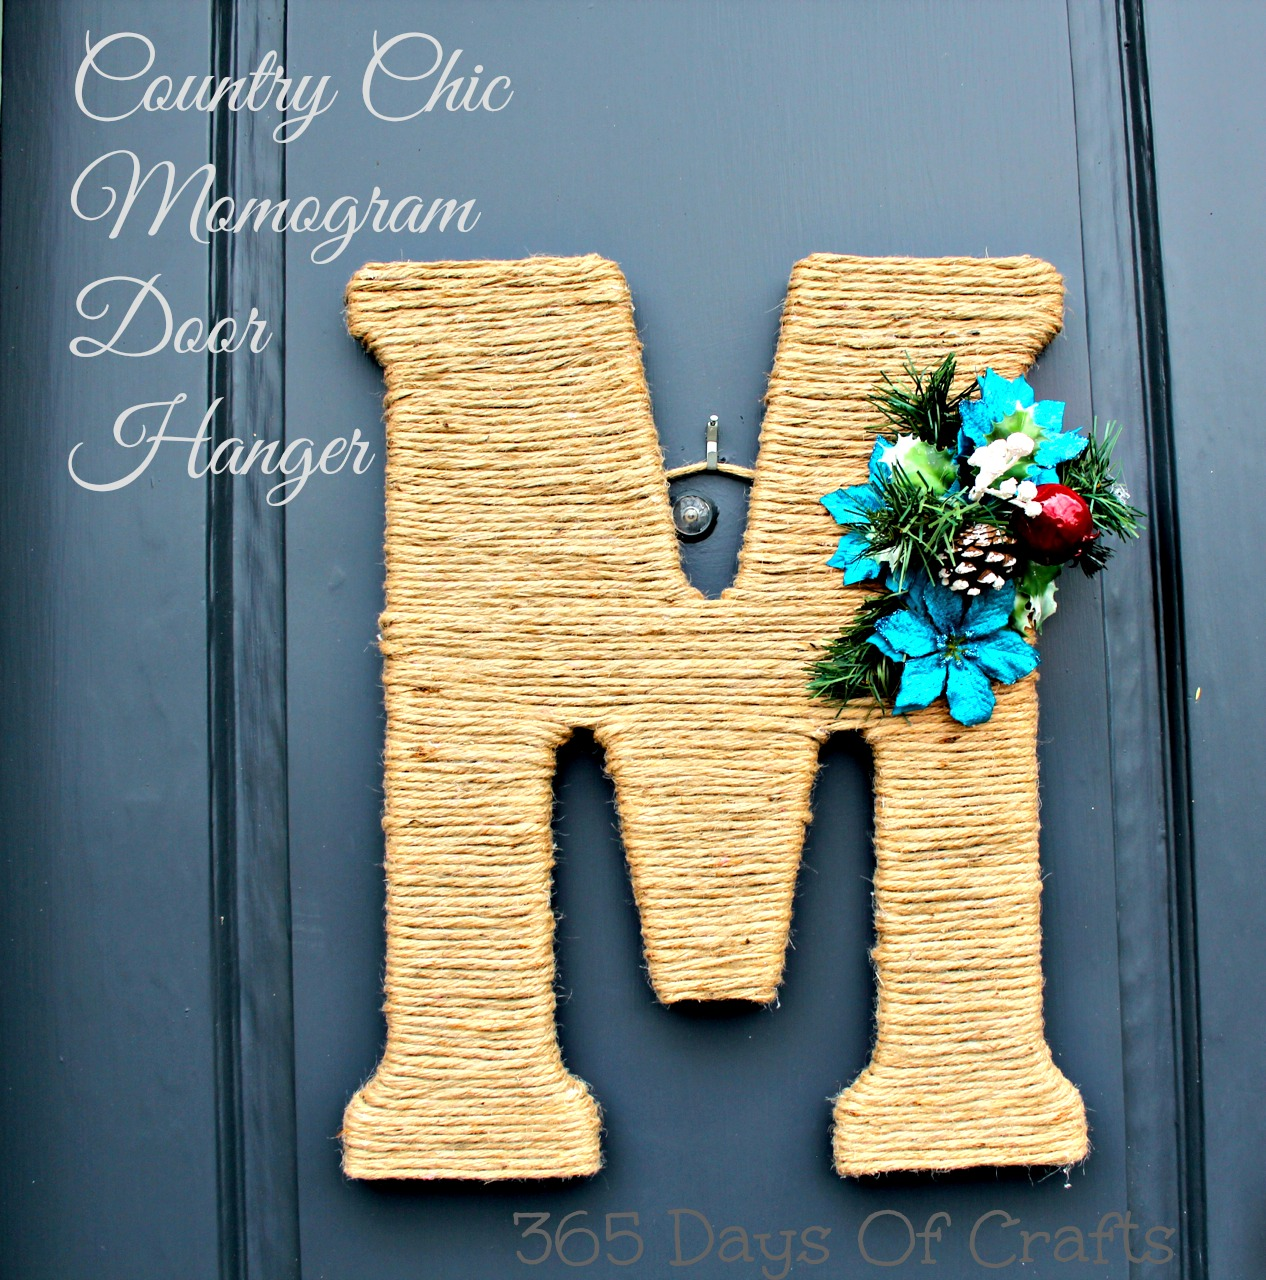 Monogram door hanger diy tutorial using jute and hot glue gun for Sisal decoration